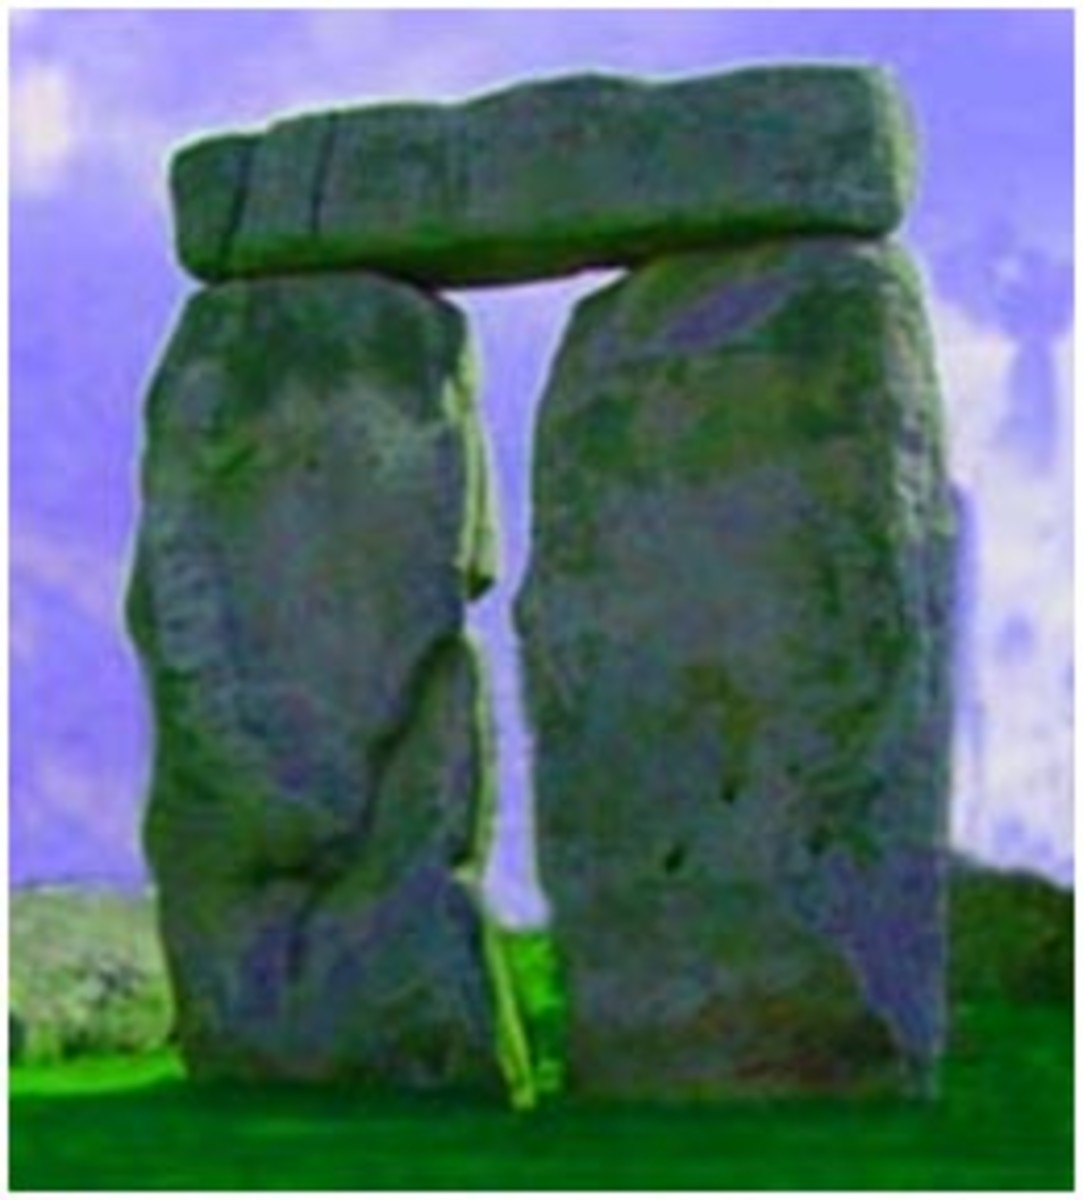 A part of the Stonehenge monument